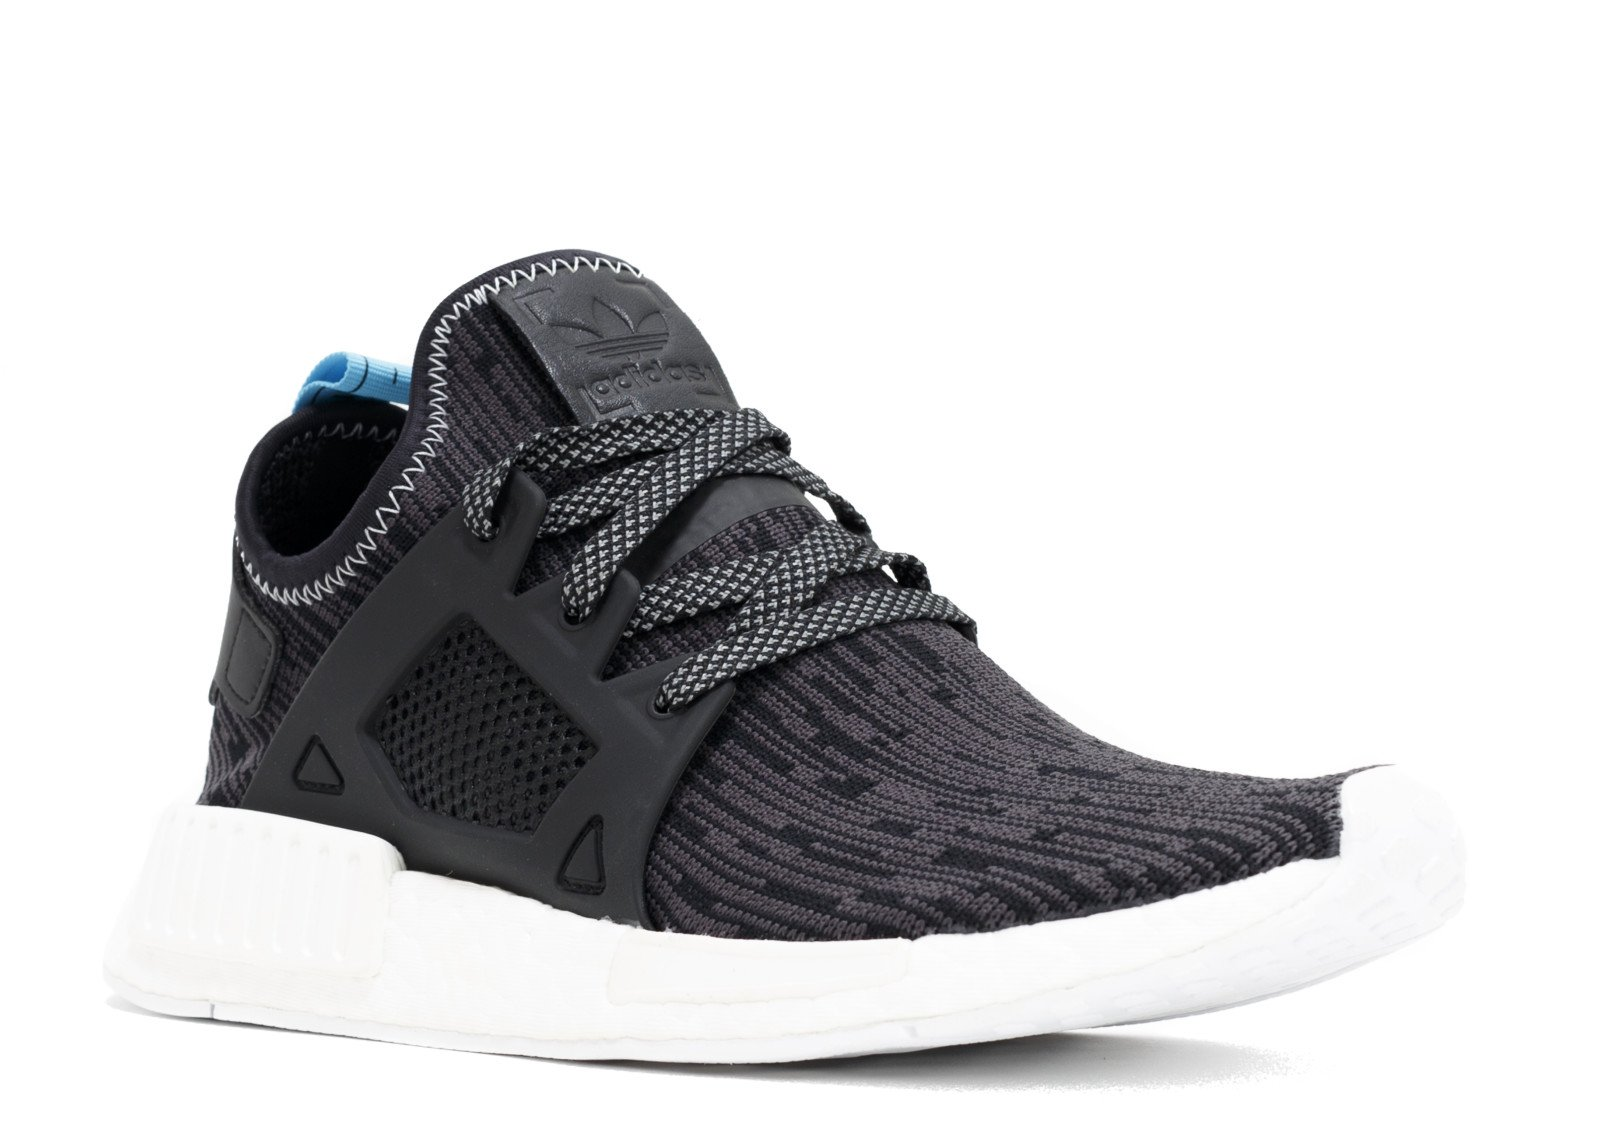 3f9ddf7116ef2 Galleon - Adidas NMD Xr1 Pk - S32215 - Size 4.5 Black